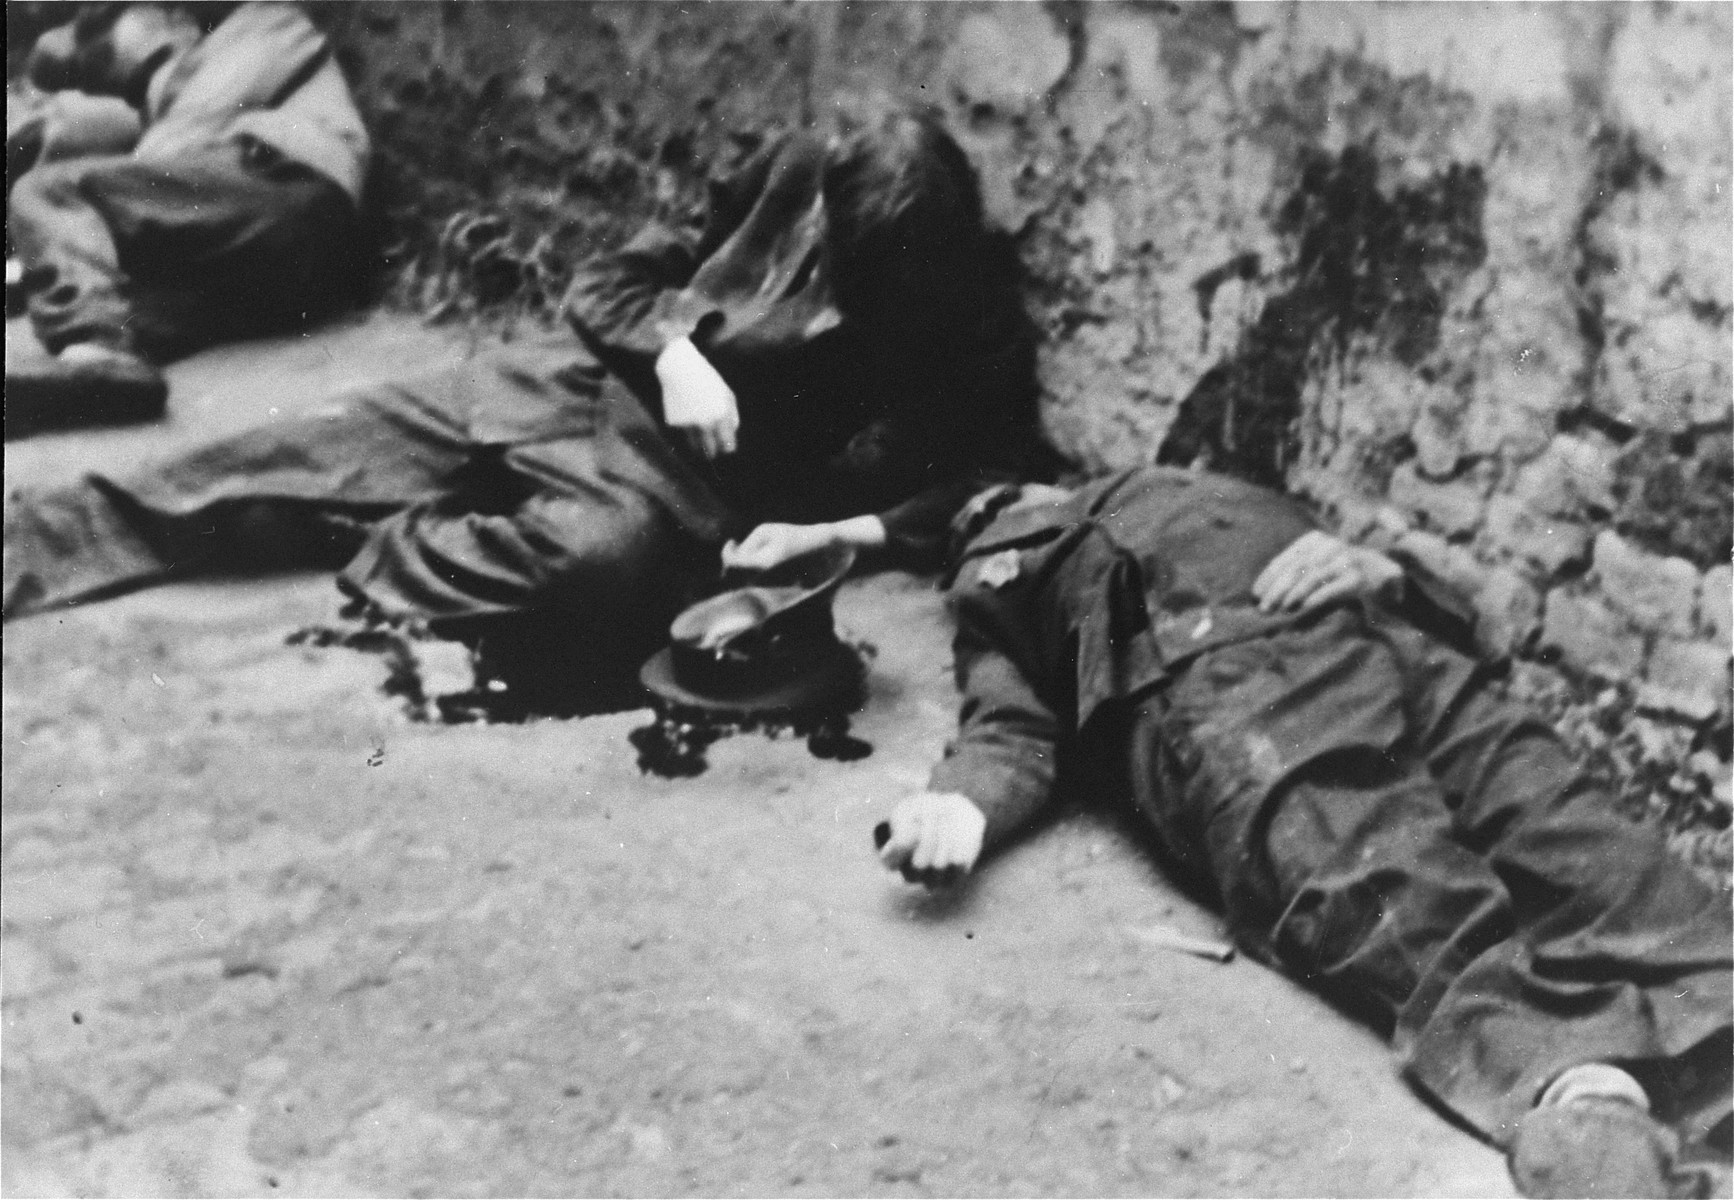 The bodies of Jewish policemen executed by the SS during the Warsaw ghetto uprising.